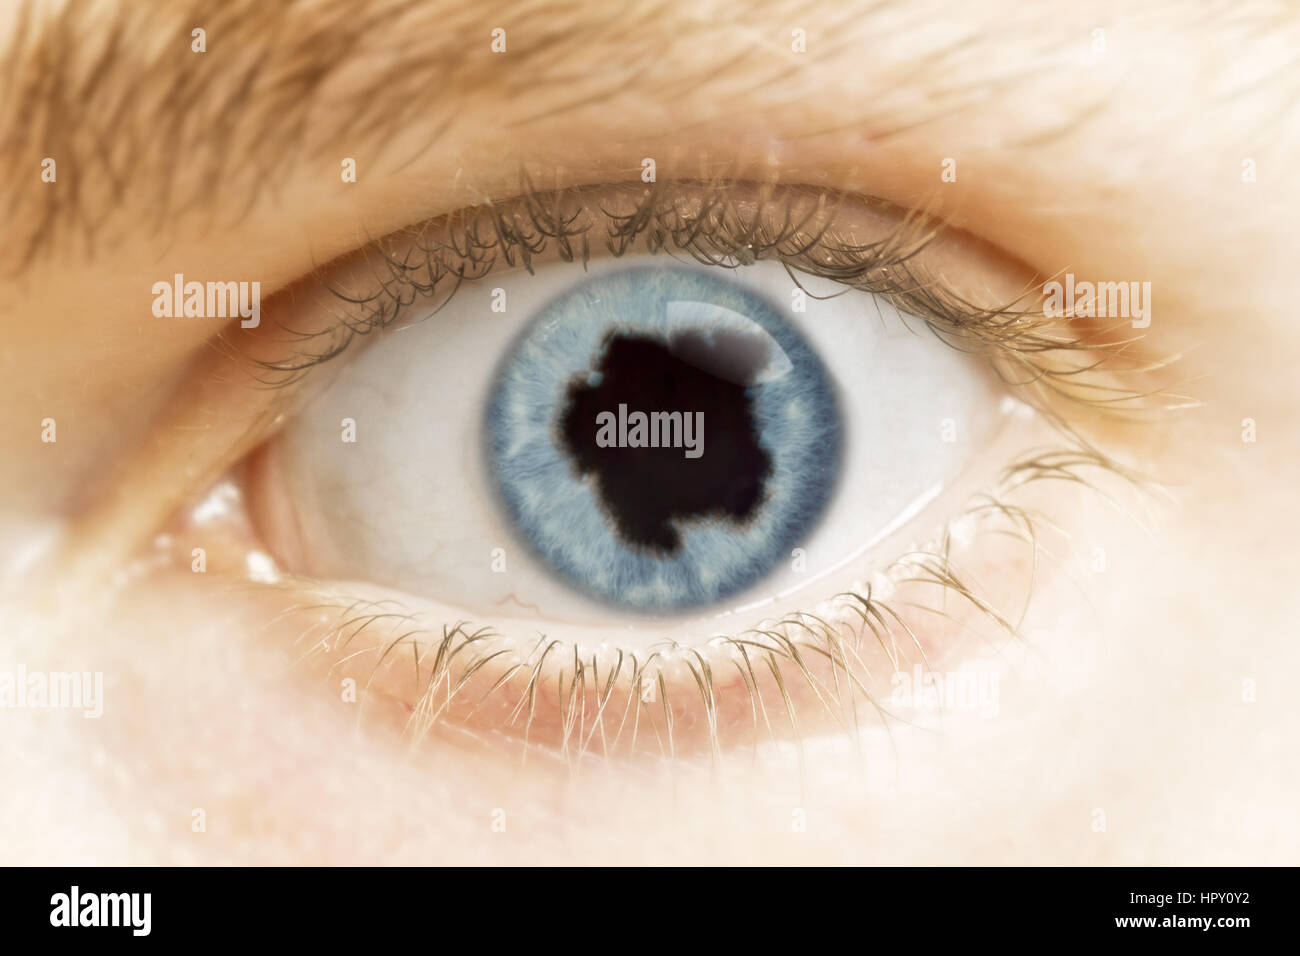 A close-up of an eye with the pupil in the shape of Suriname.(series) - Stock Image